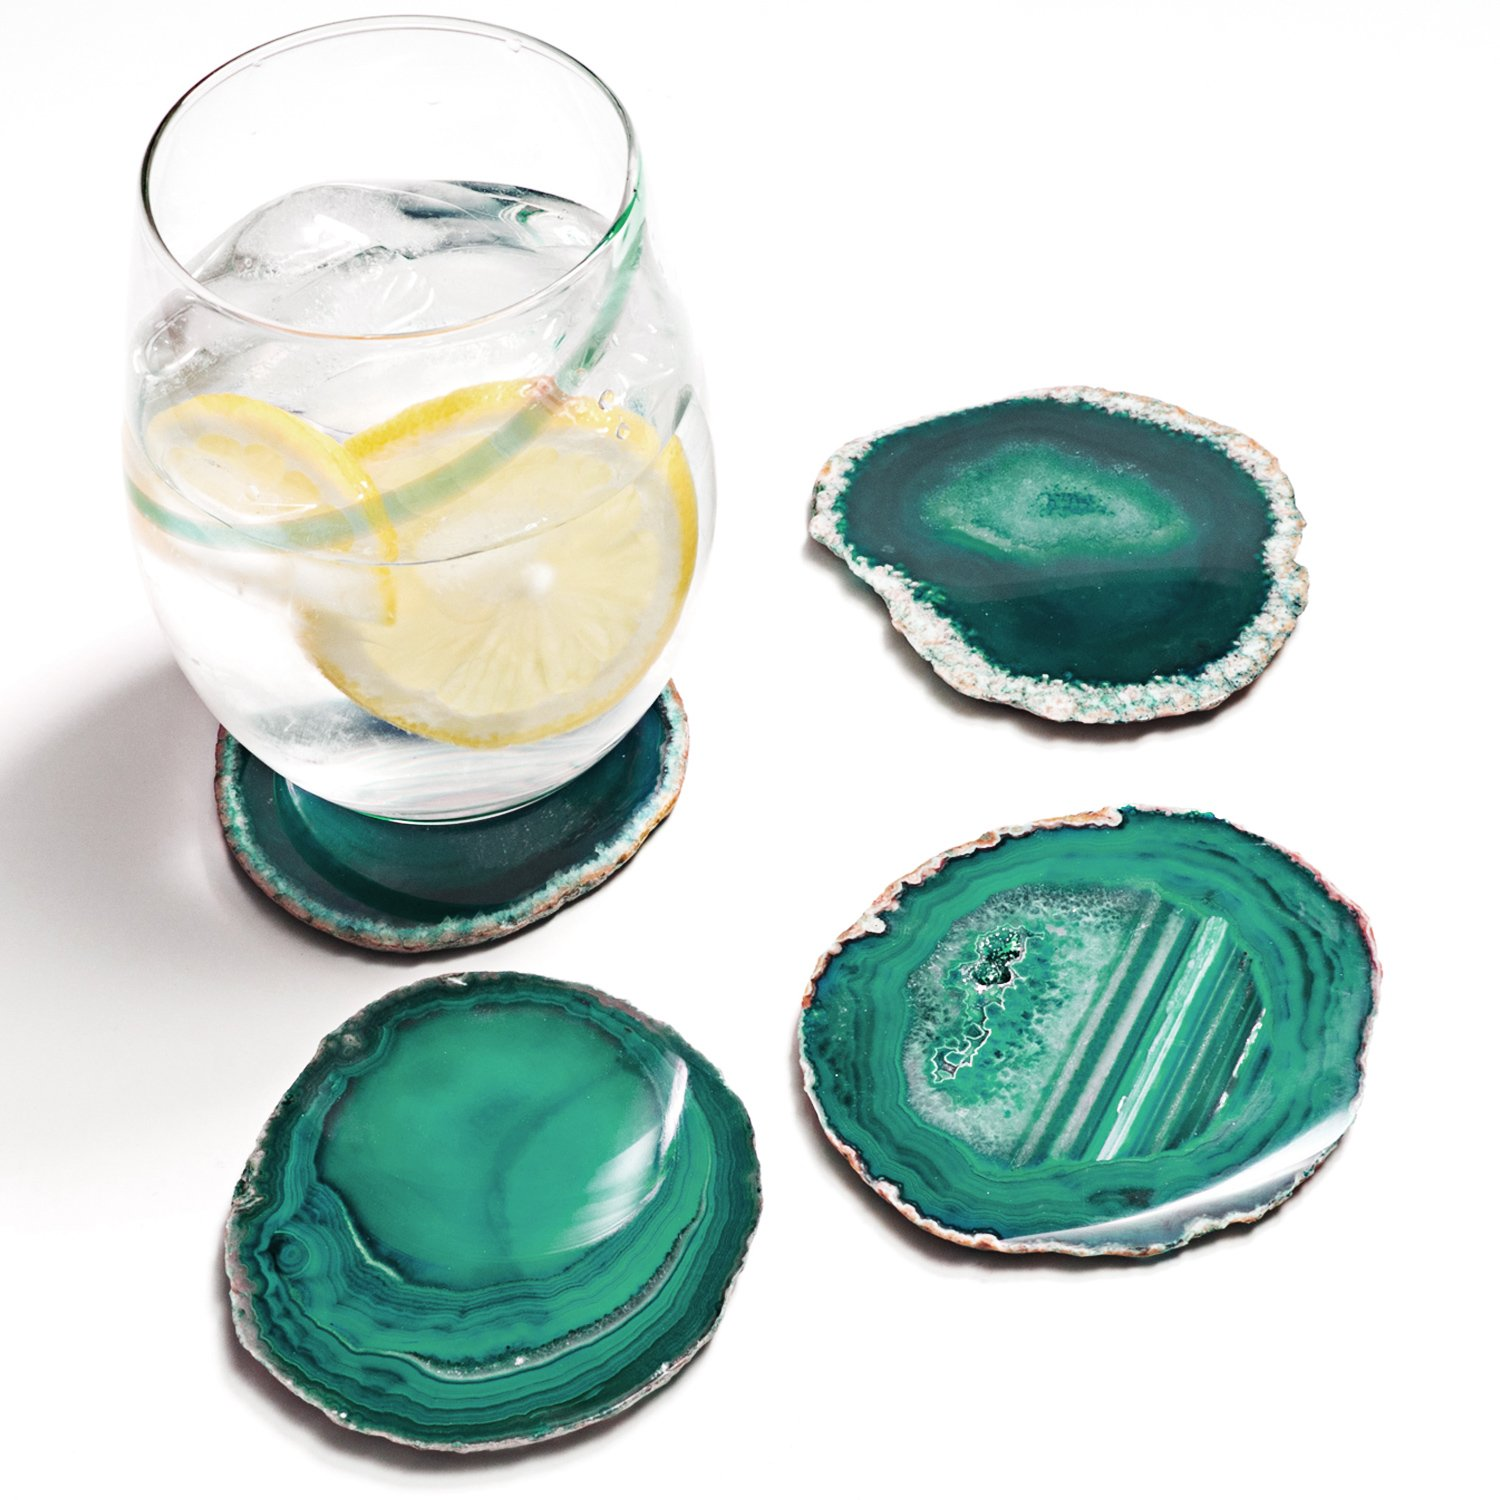 Amethya Natural Sliced Agate Coaster, Cup Mat for Drinks with Rubber Bumper, Set of 4 (Teal) by Amethya